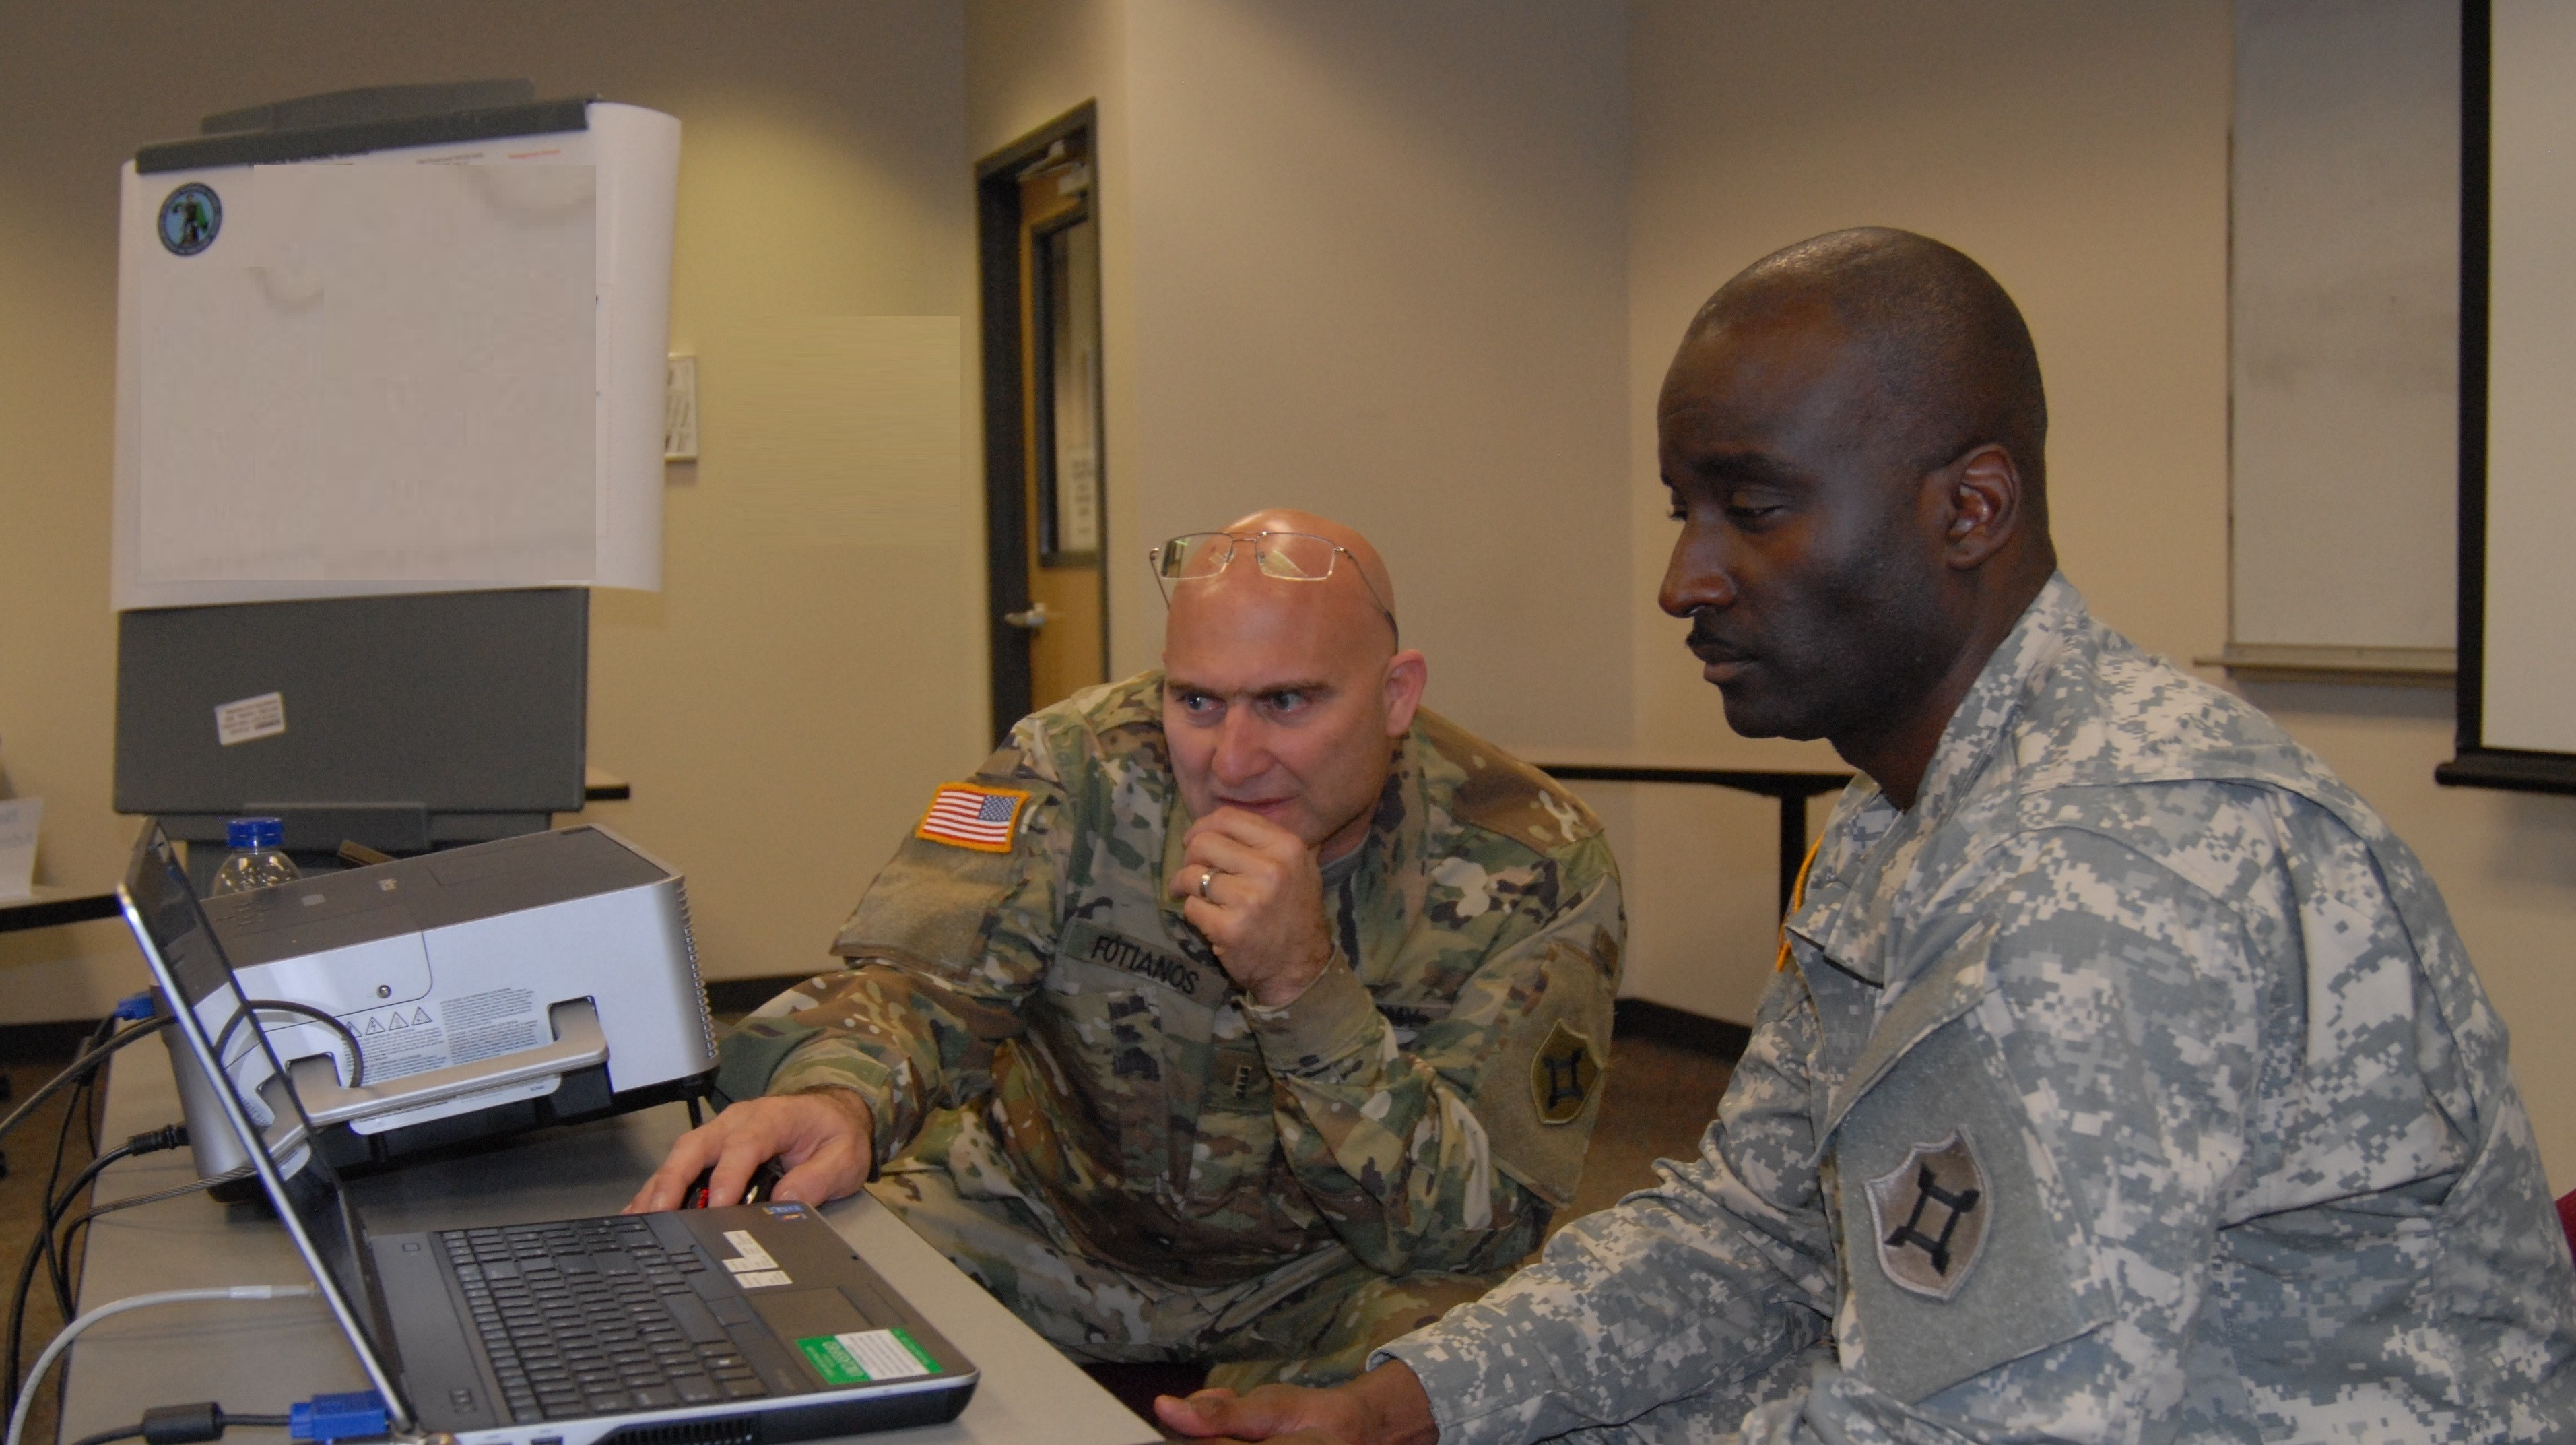 united states army computer - photo #2